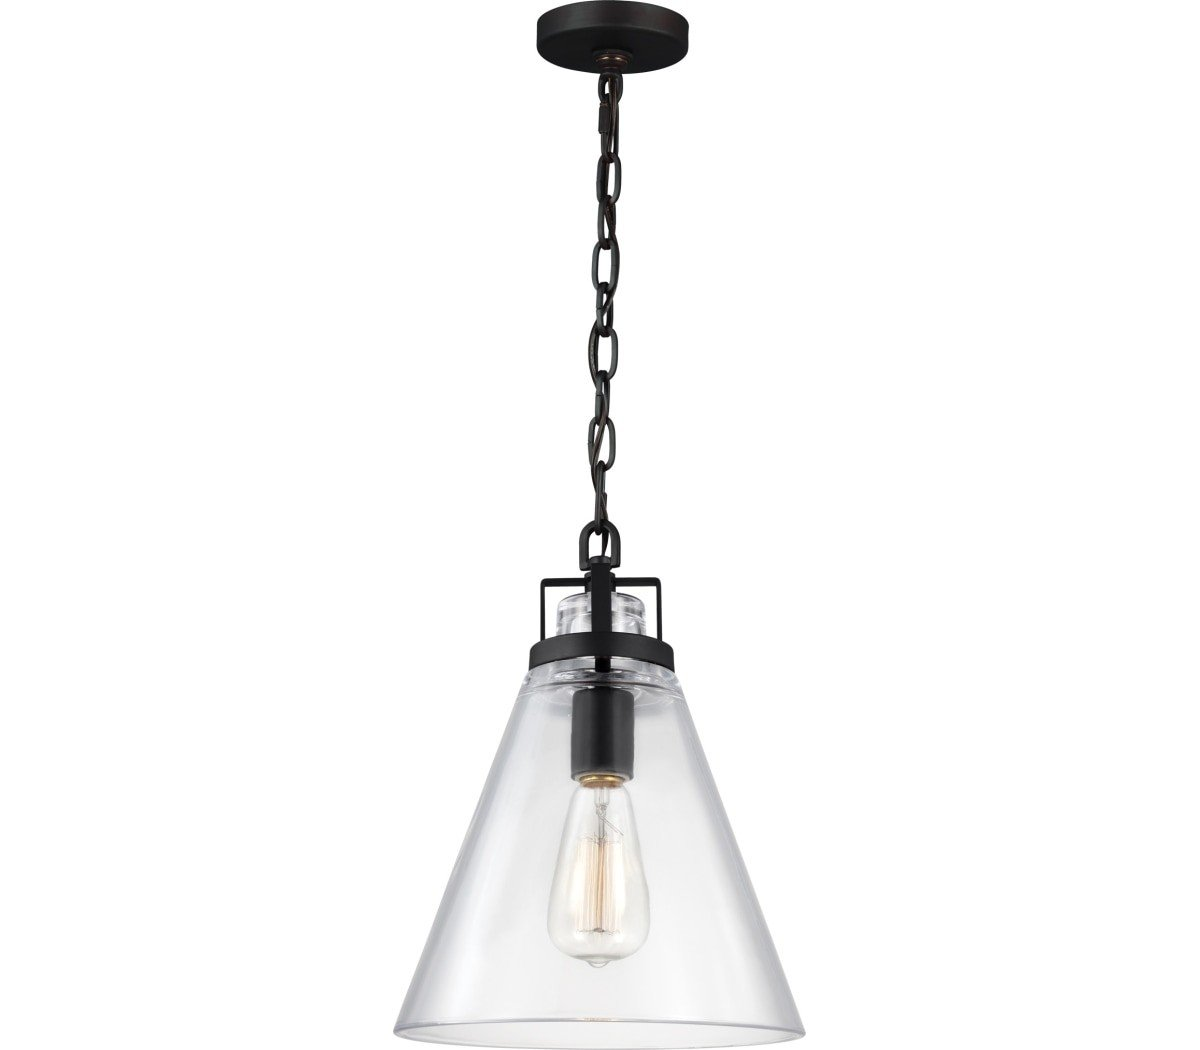 murray feiss frontage feiss-frontage-pendant-1